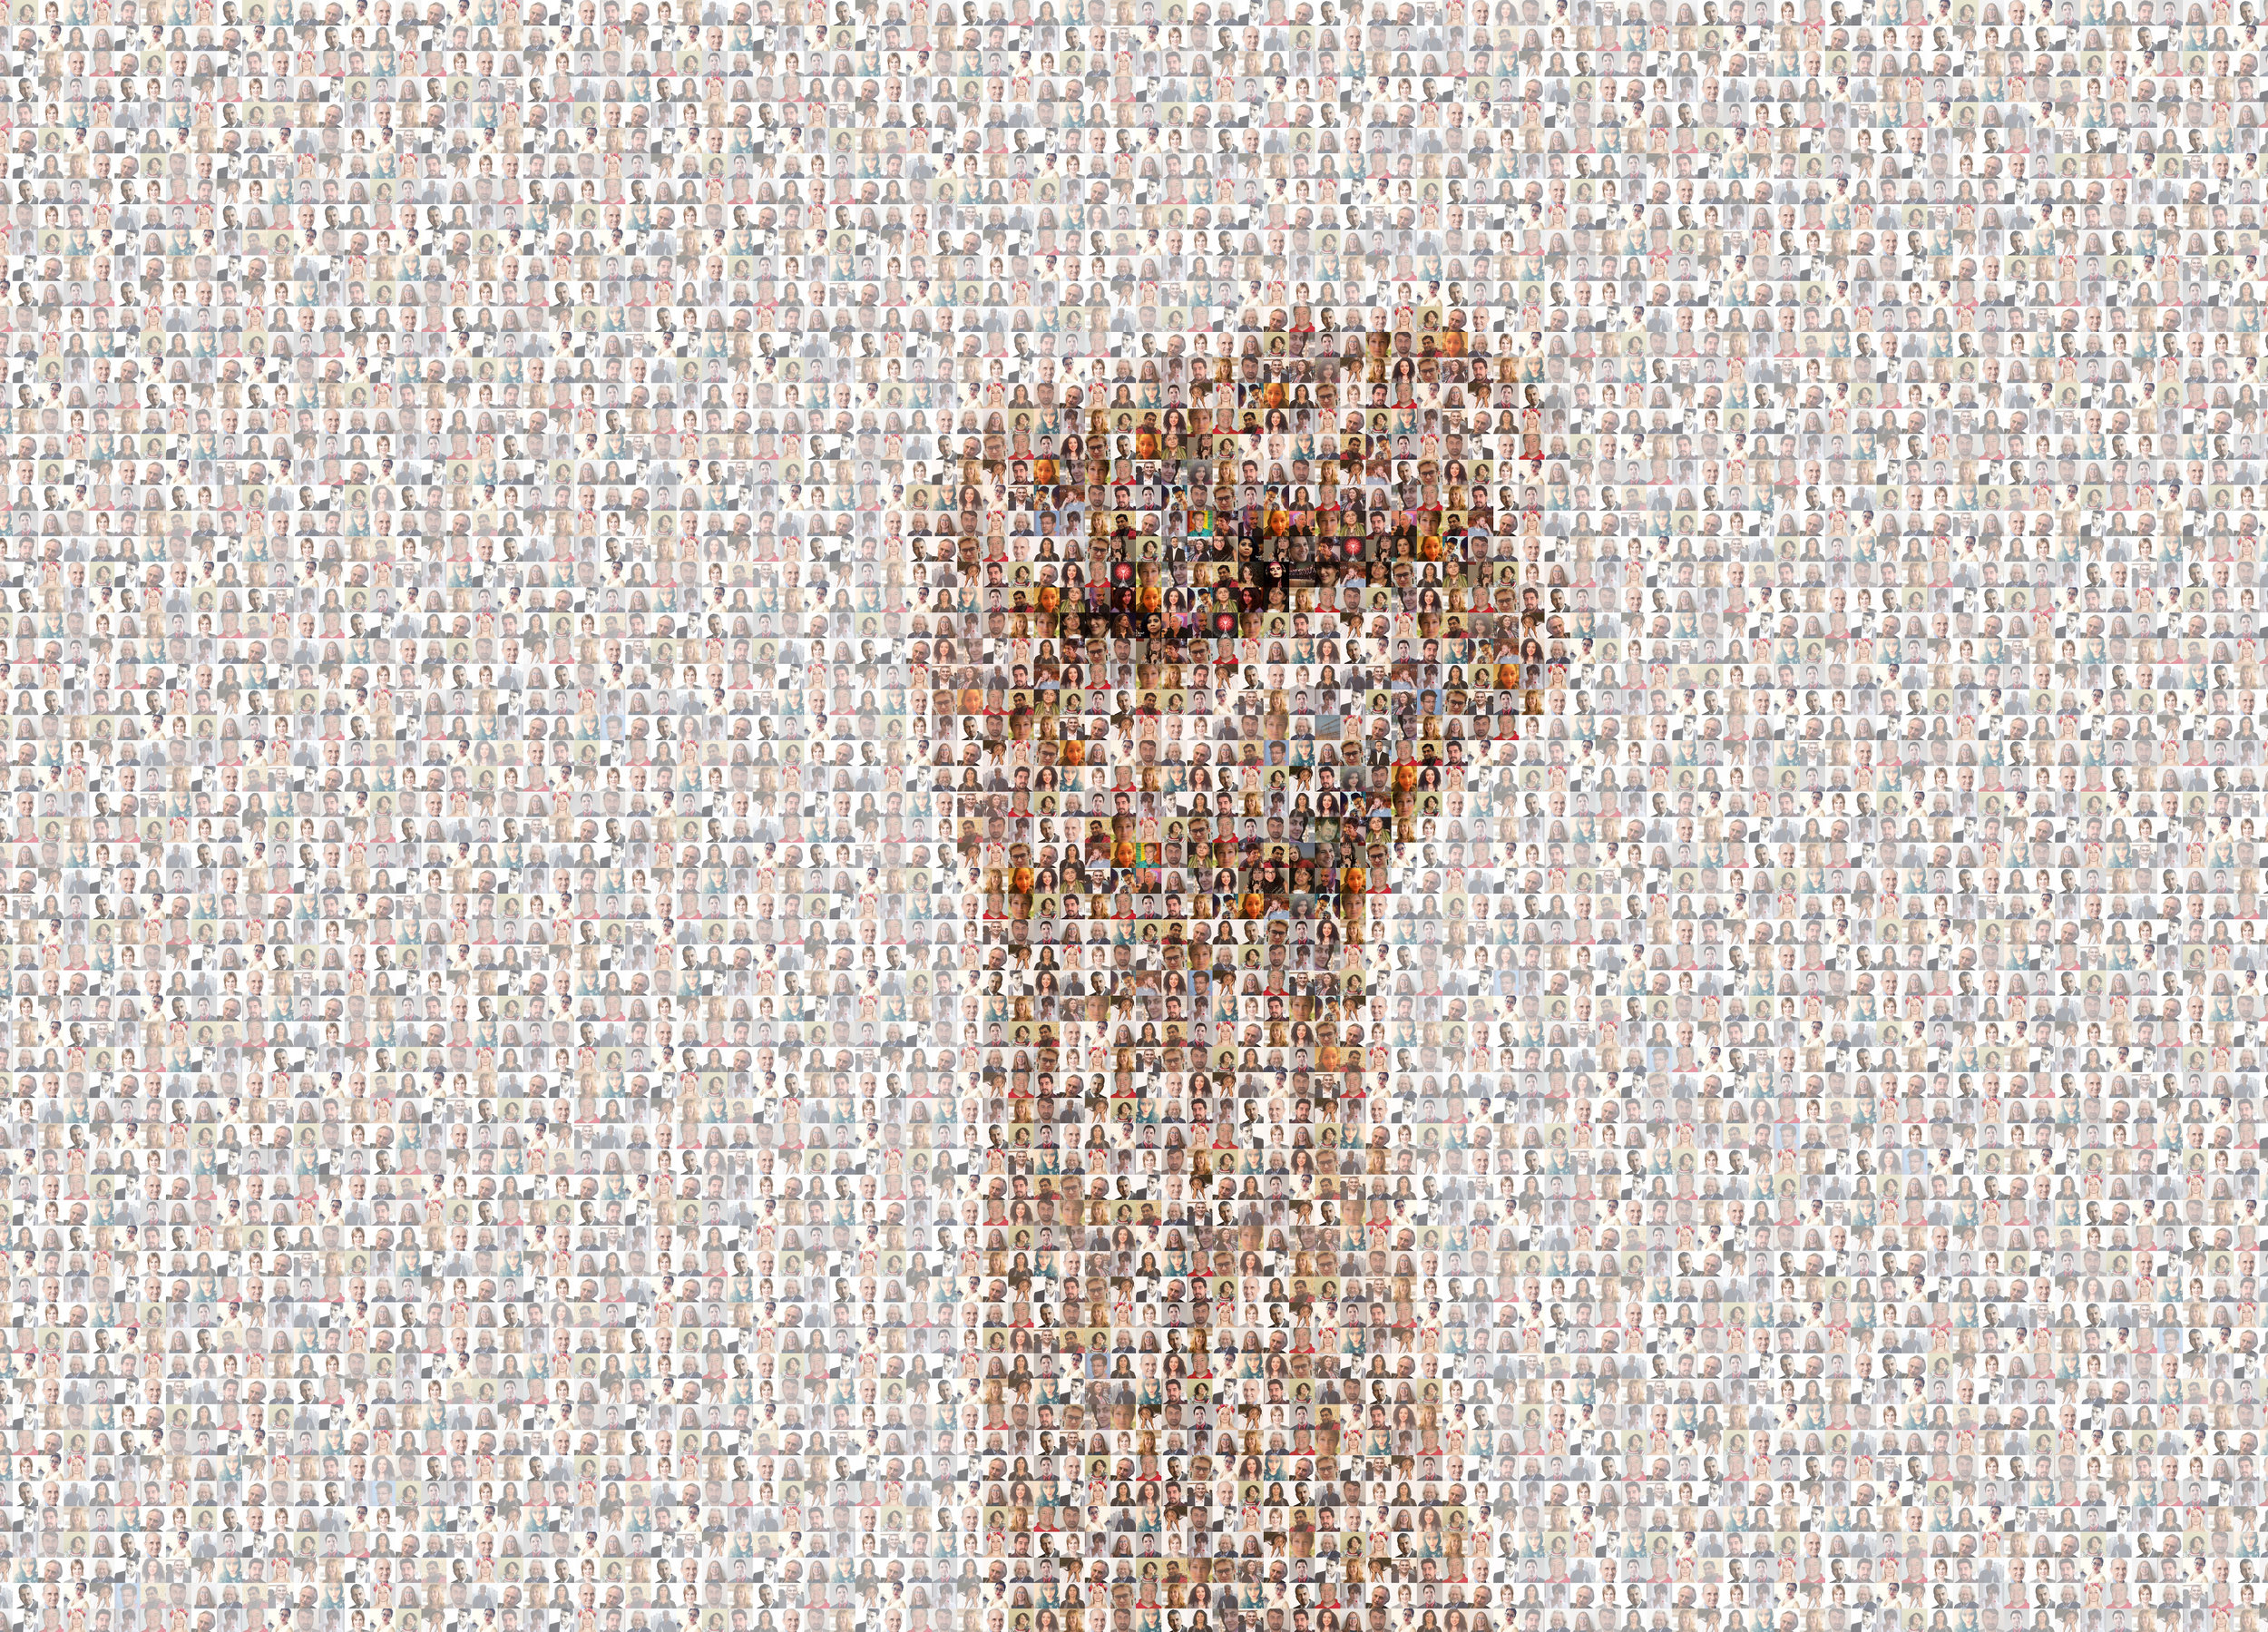 secular-fist-mosaic2-scaled.jpeg